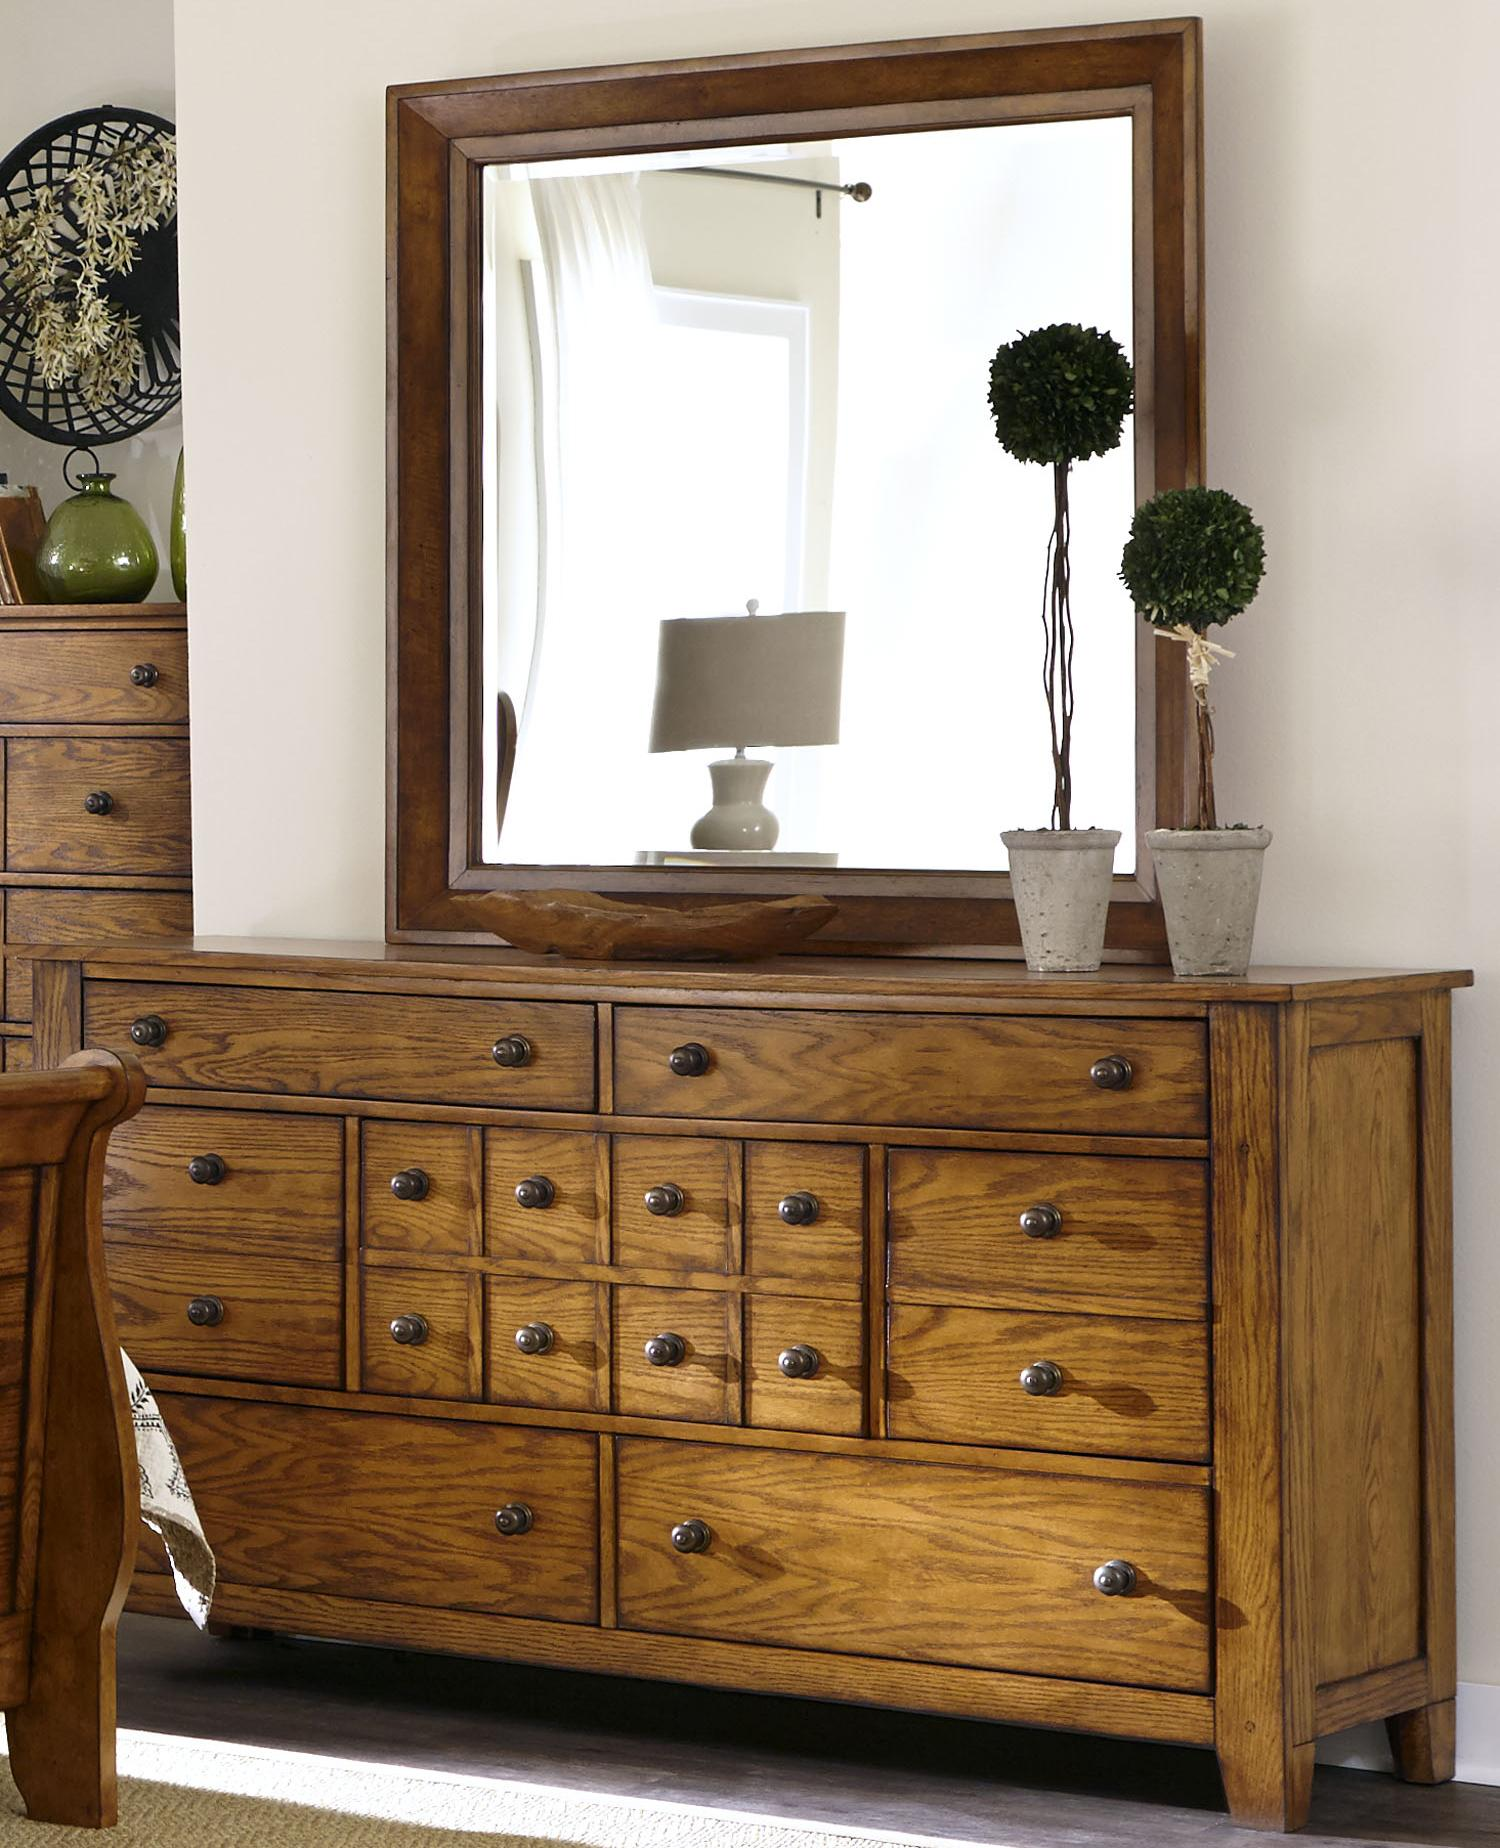 Liberty Furniture Grandpa's Cabin Dresser and Mirror Set - Item Number: 175-BR-DM